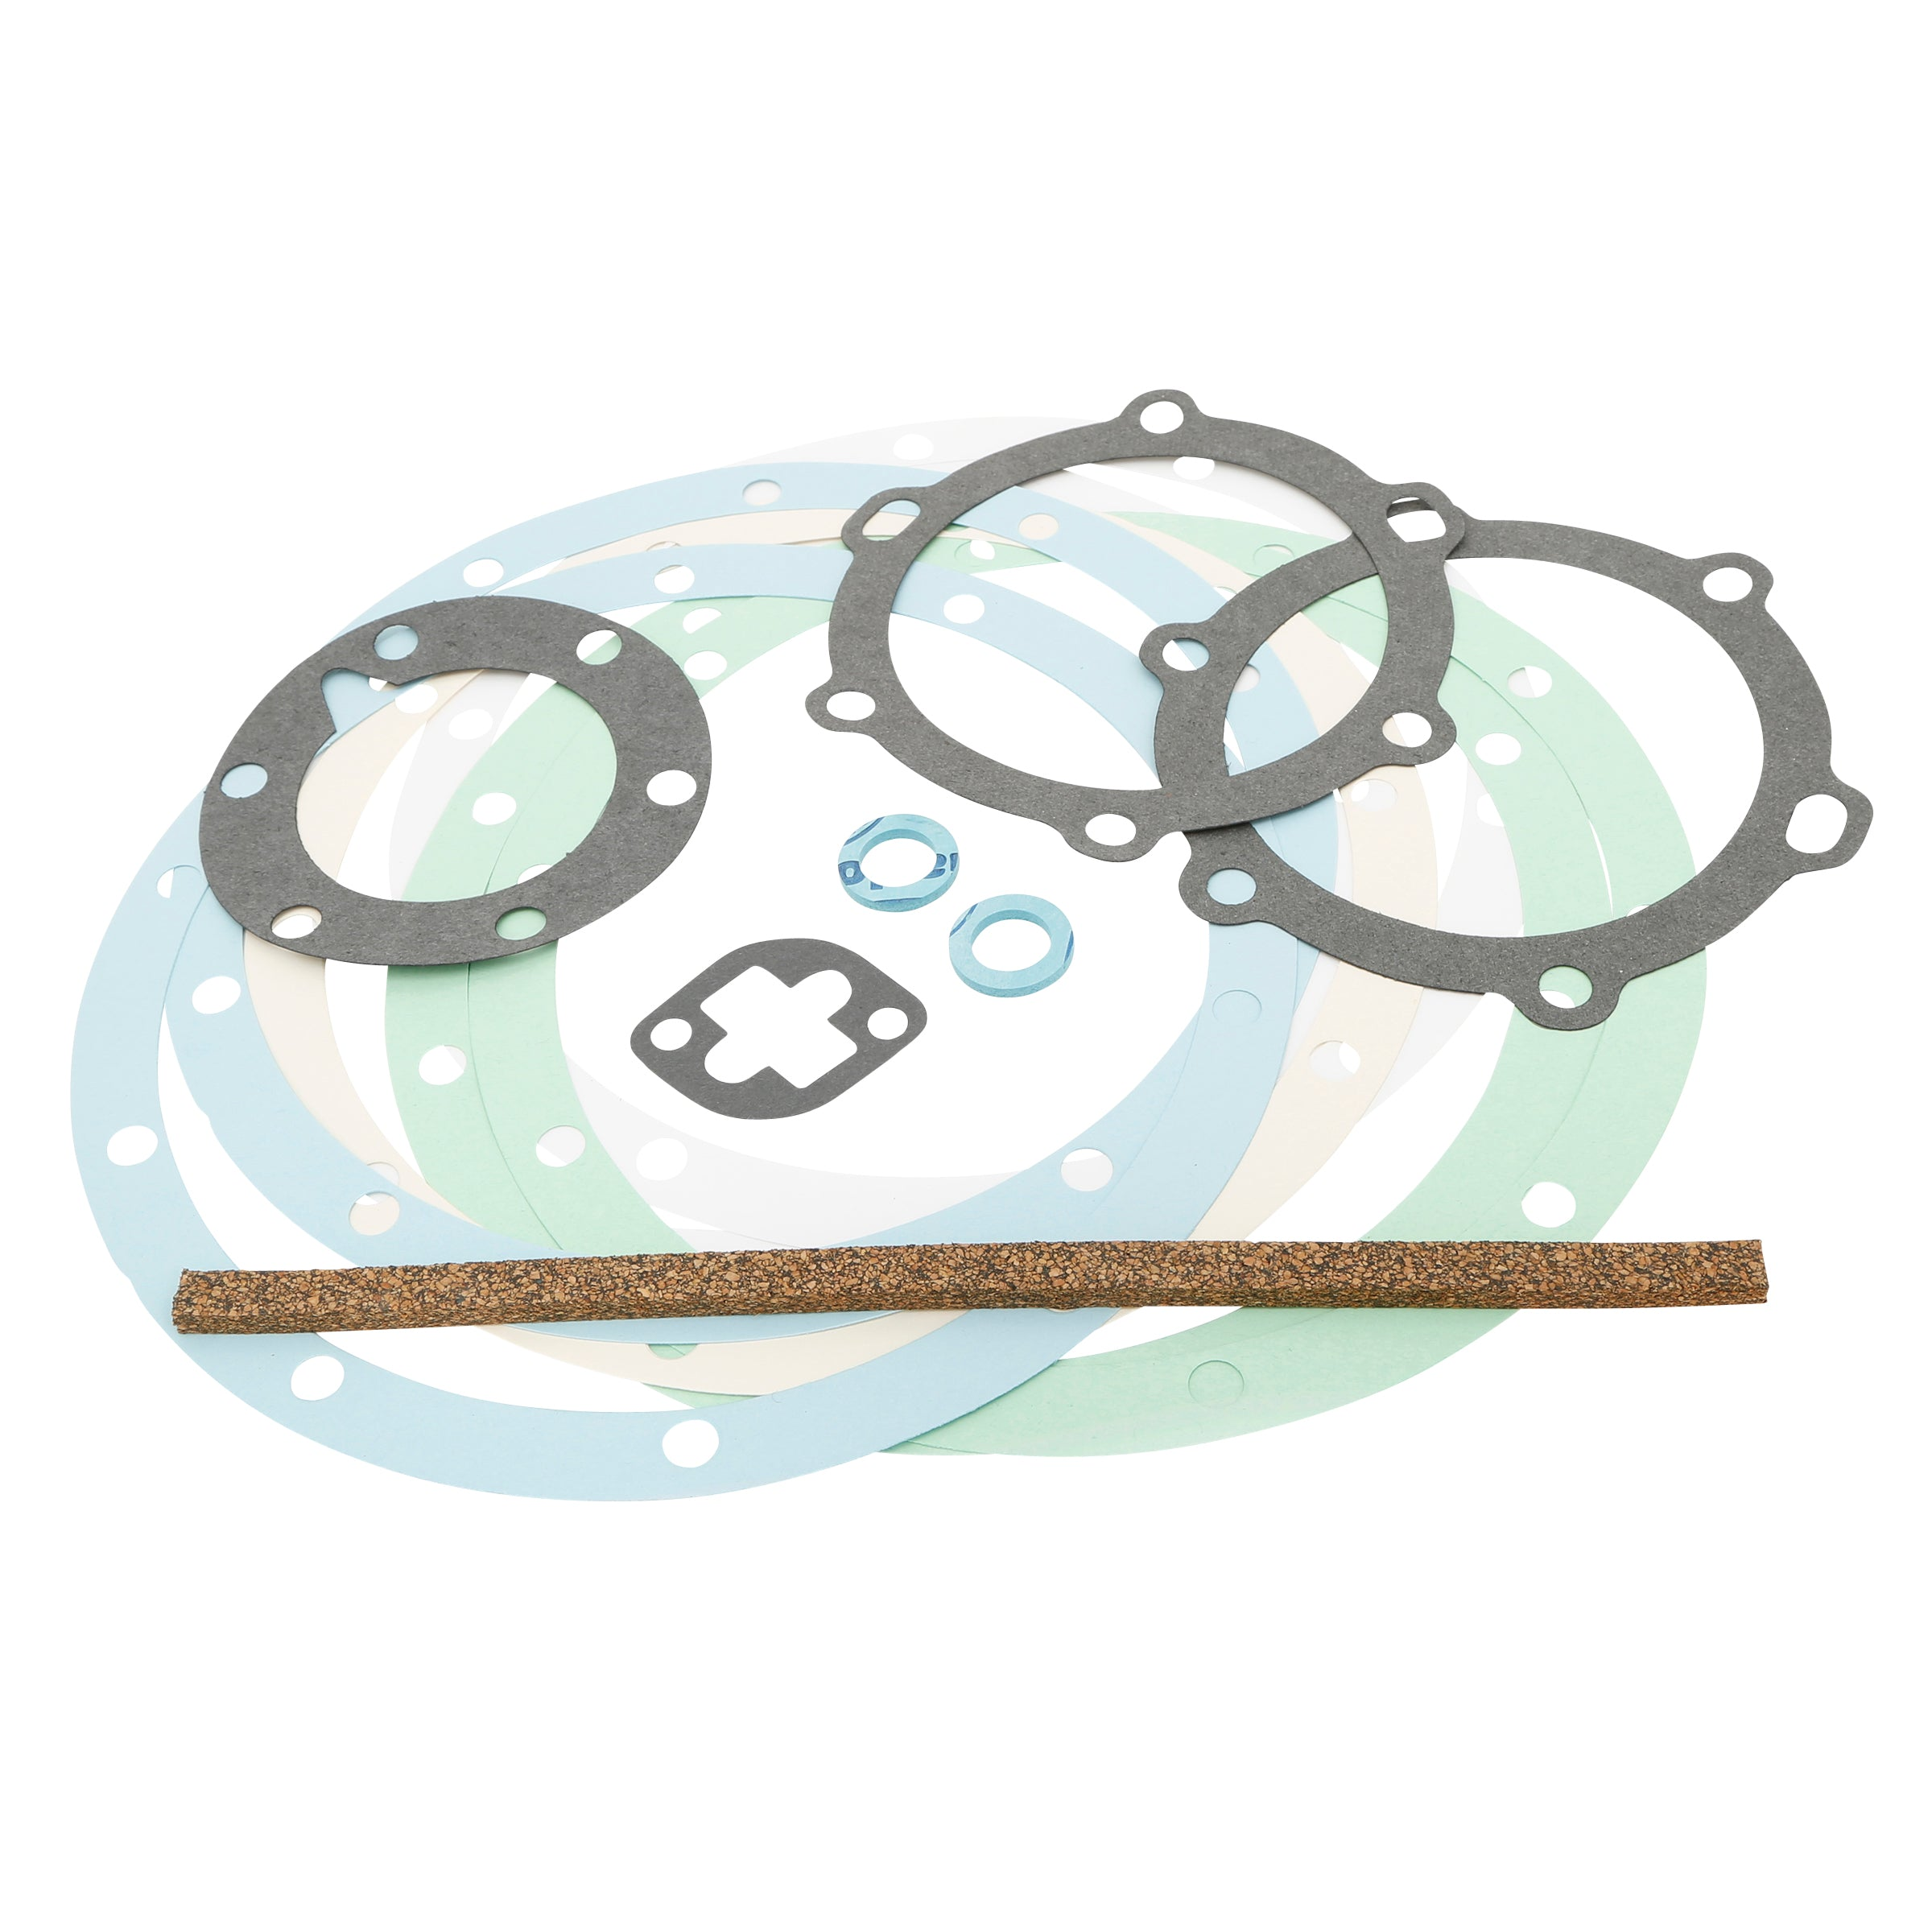 Axle and U-Joint Gasket Set (Rear) • 1928-31